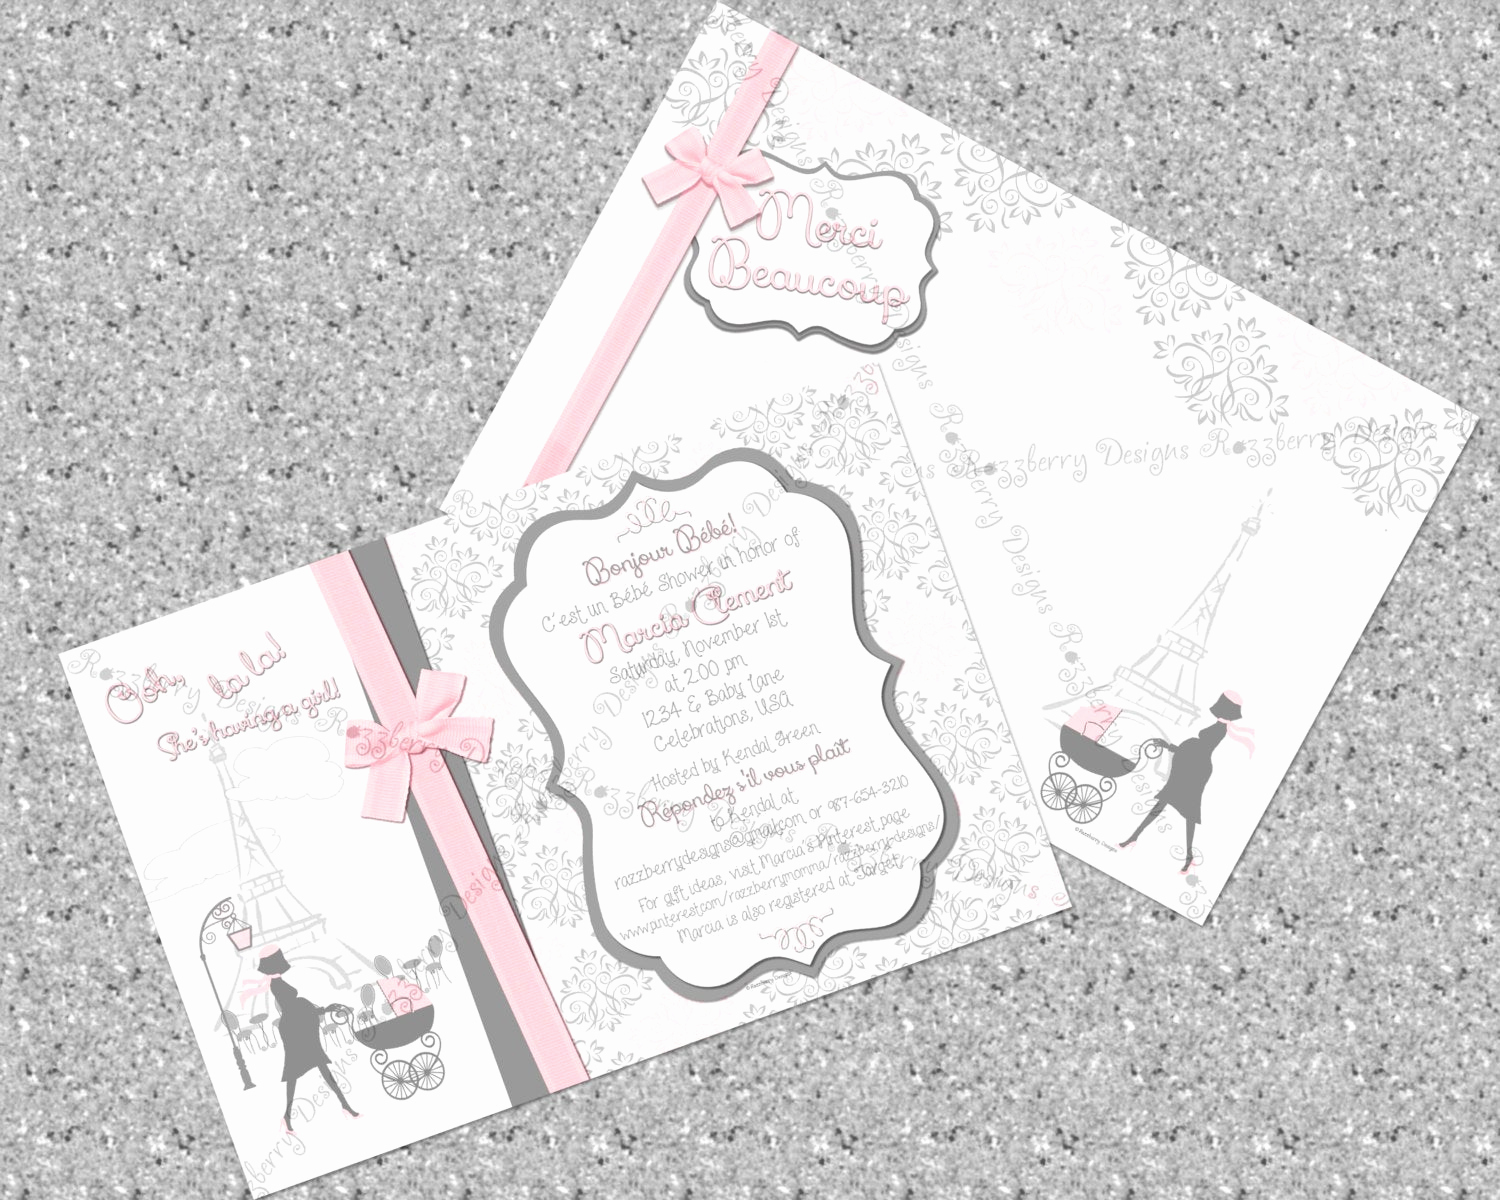 French Baby Shower Invitation Best Of Bonjour Bebe Baby Shower Invitation Paris theme French theme